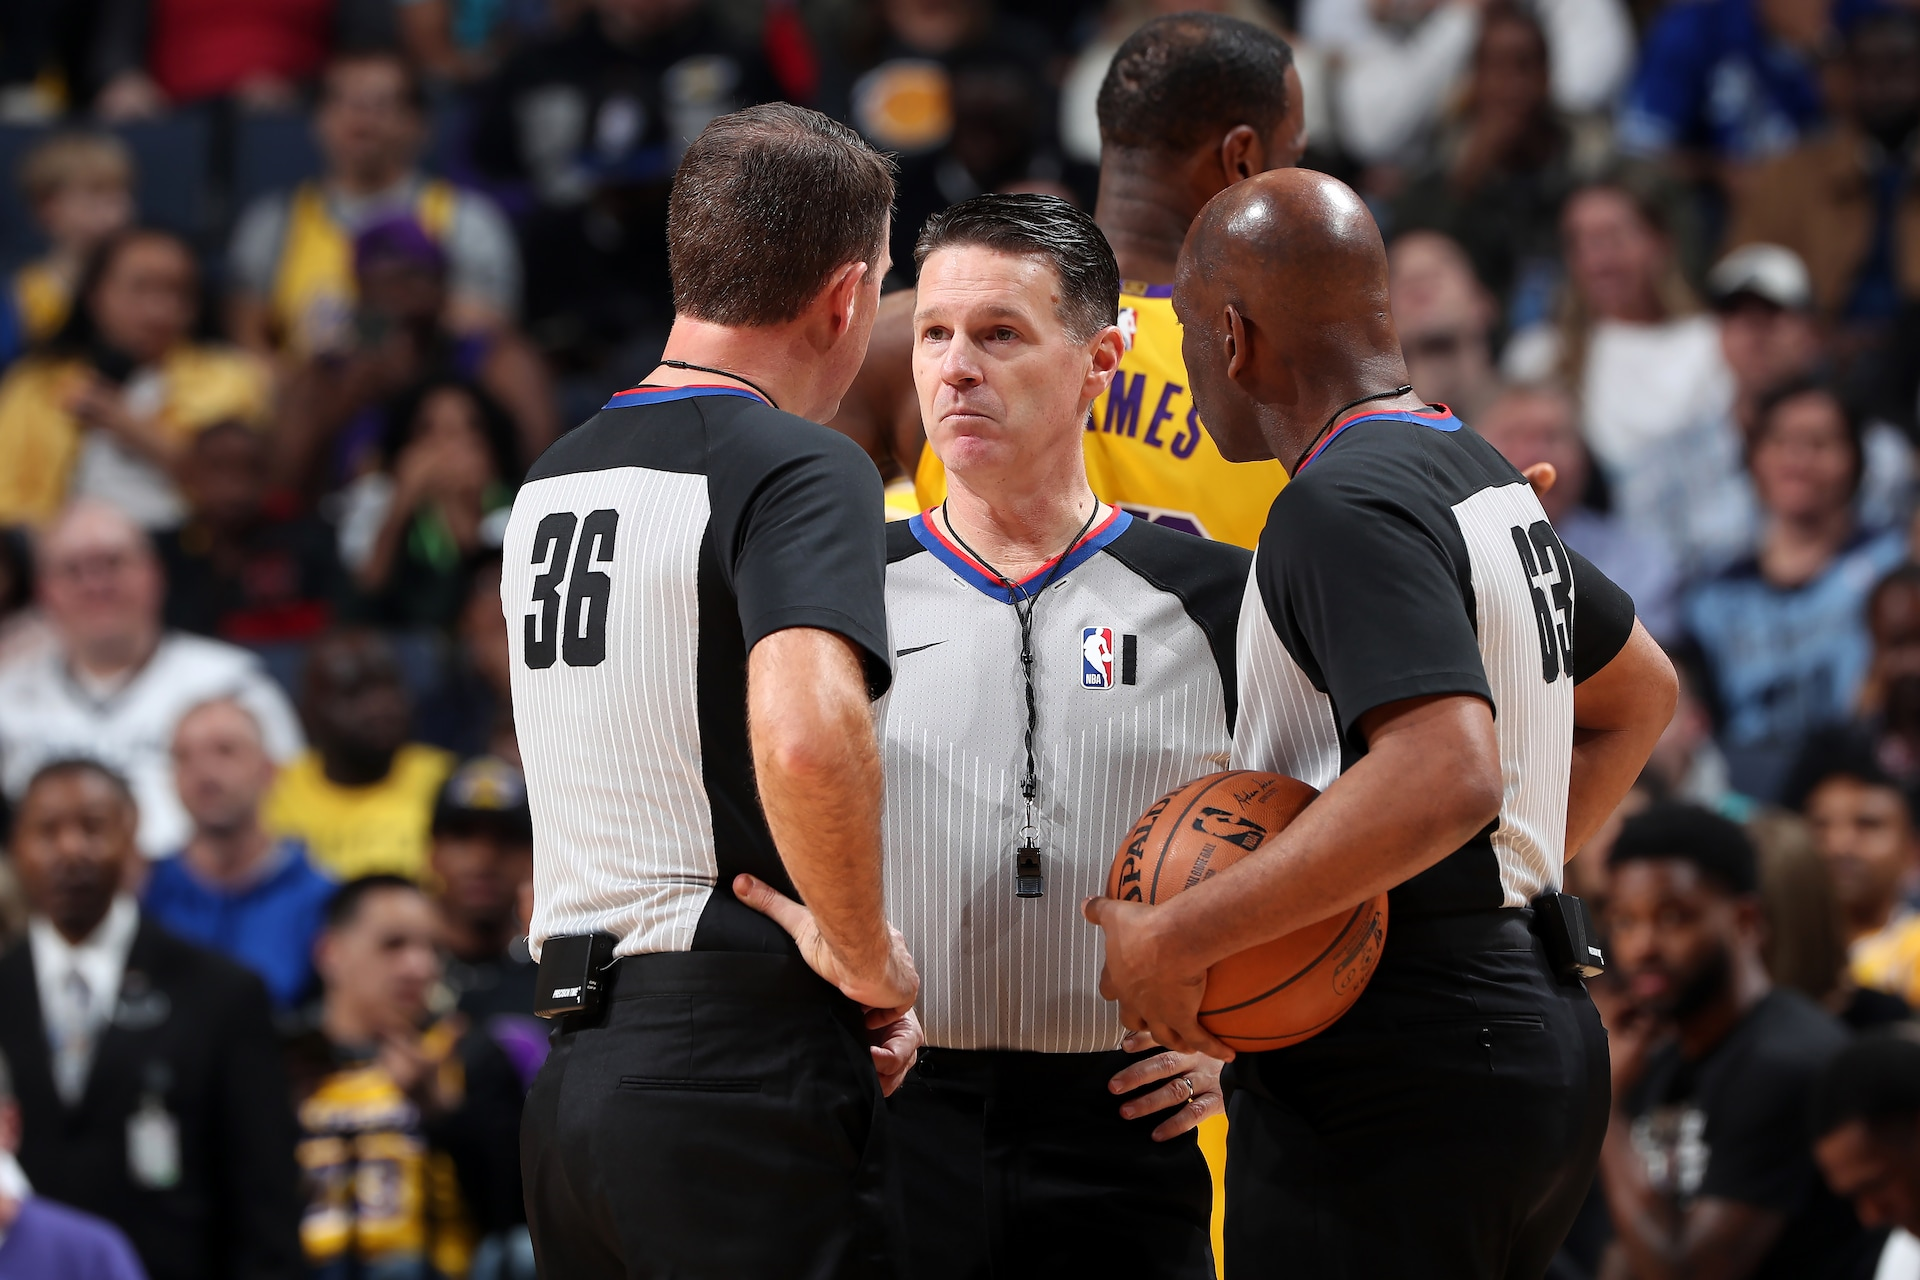 Referees gearing up for return to NBA games, too